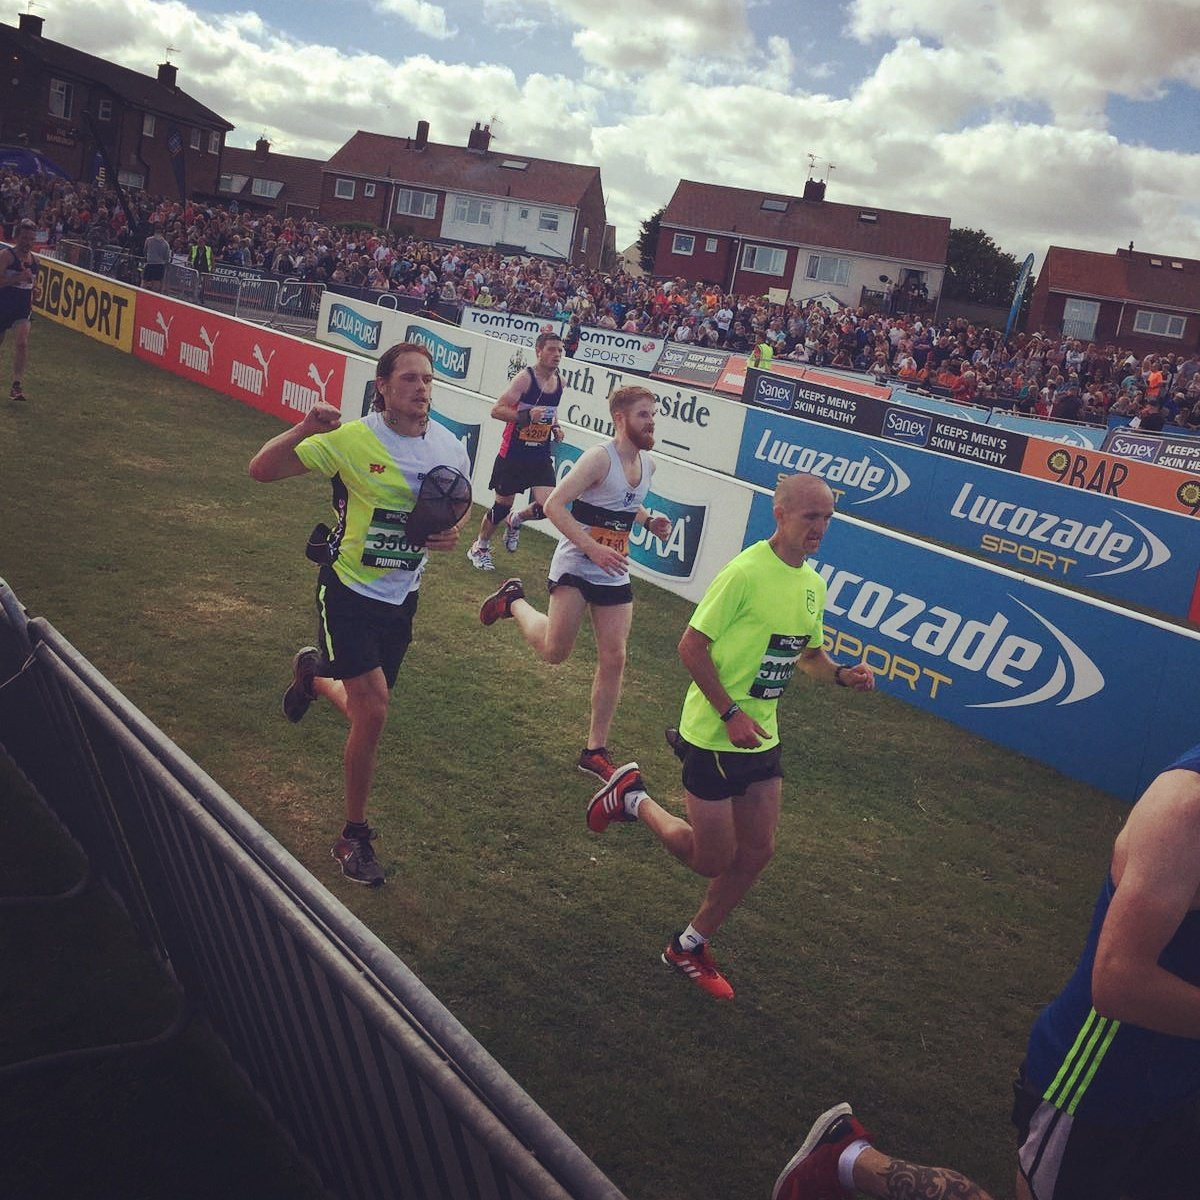 Congrats @SamHeughan finishing #GreatNorthRun for #Bloodwise in 1.27! Amazing #togetherwecan #beatbloodcancer https://t.co/JePhYZNdrf